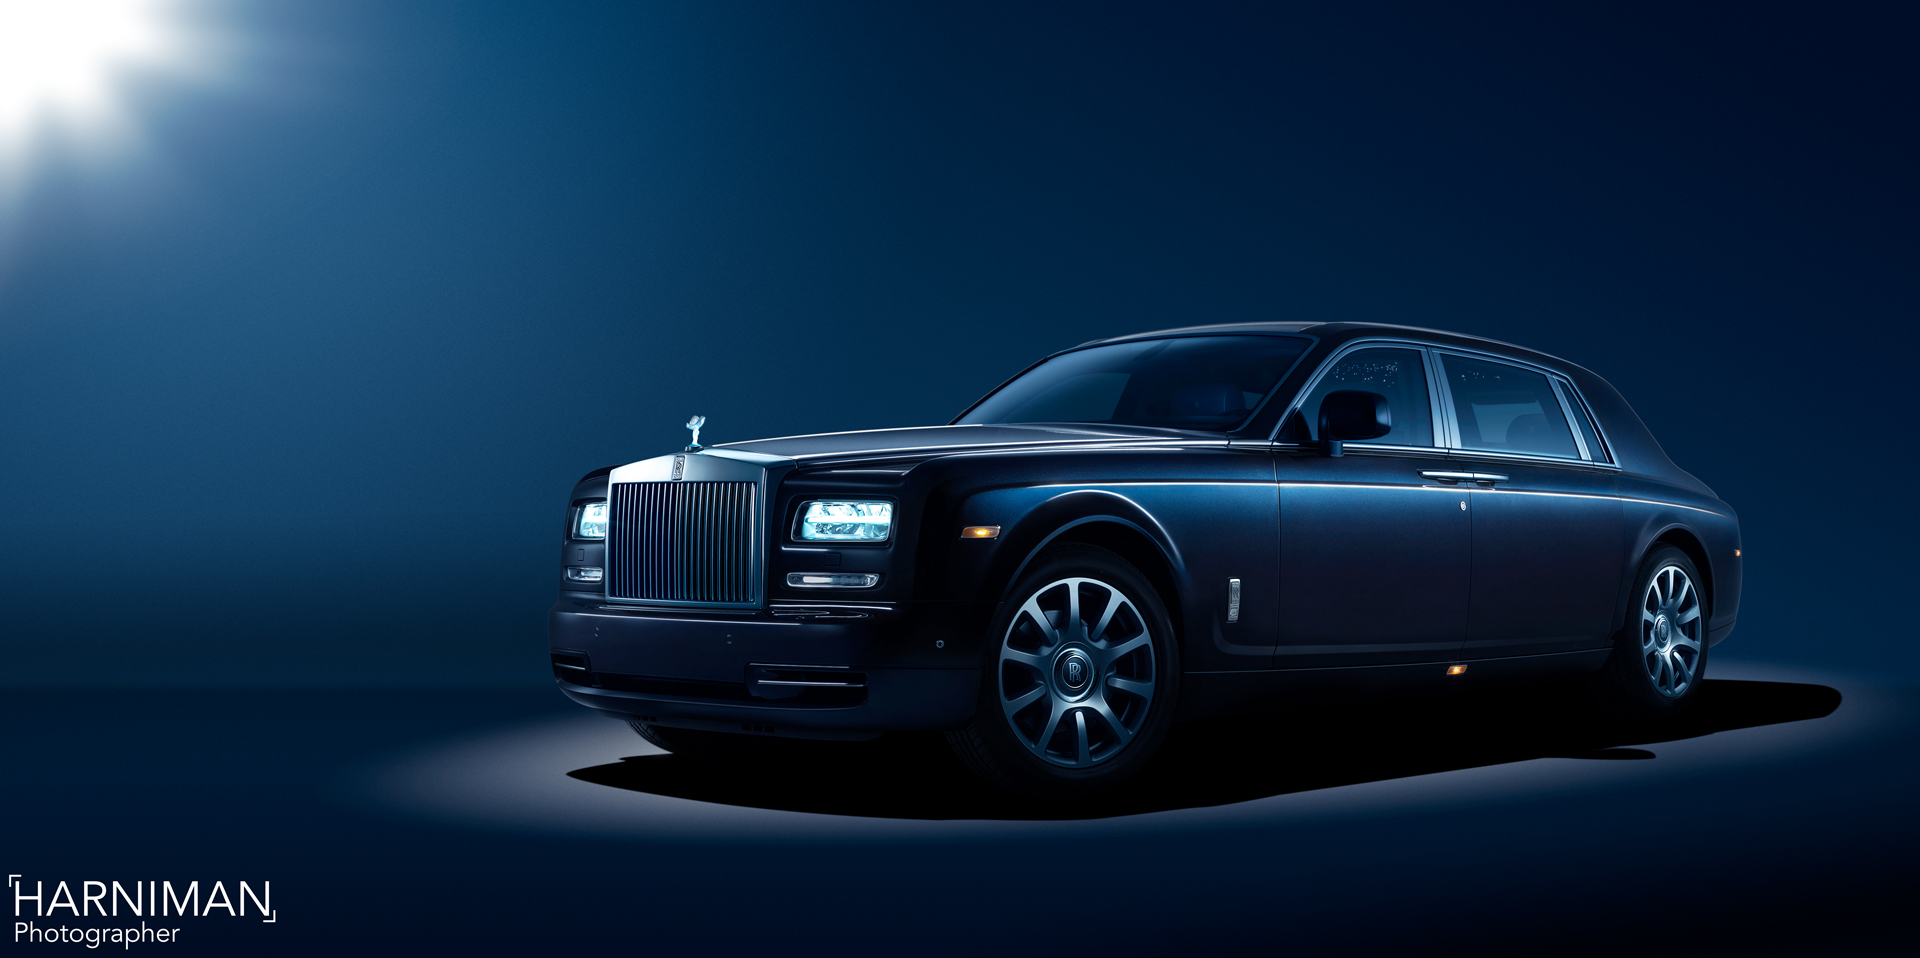 Rolls-Royce, Shooting a Divine Being, a Celestial Phantom that's a Millionaire's Christine